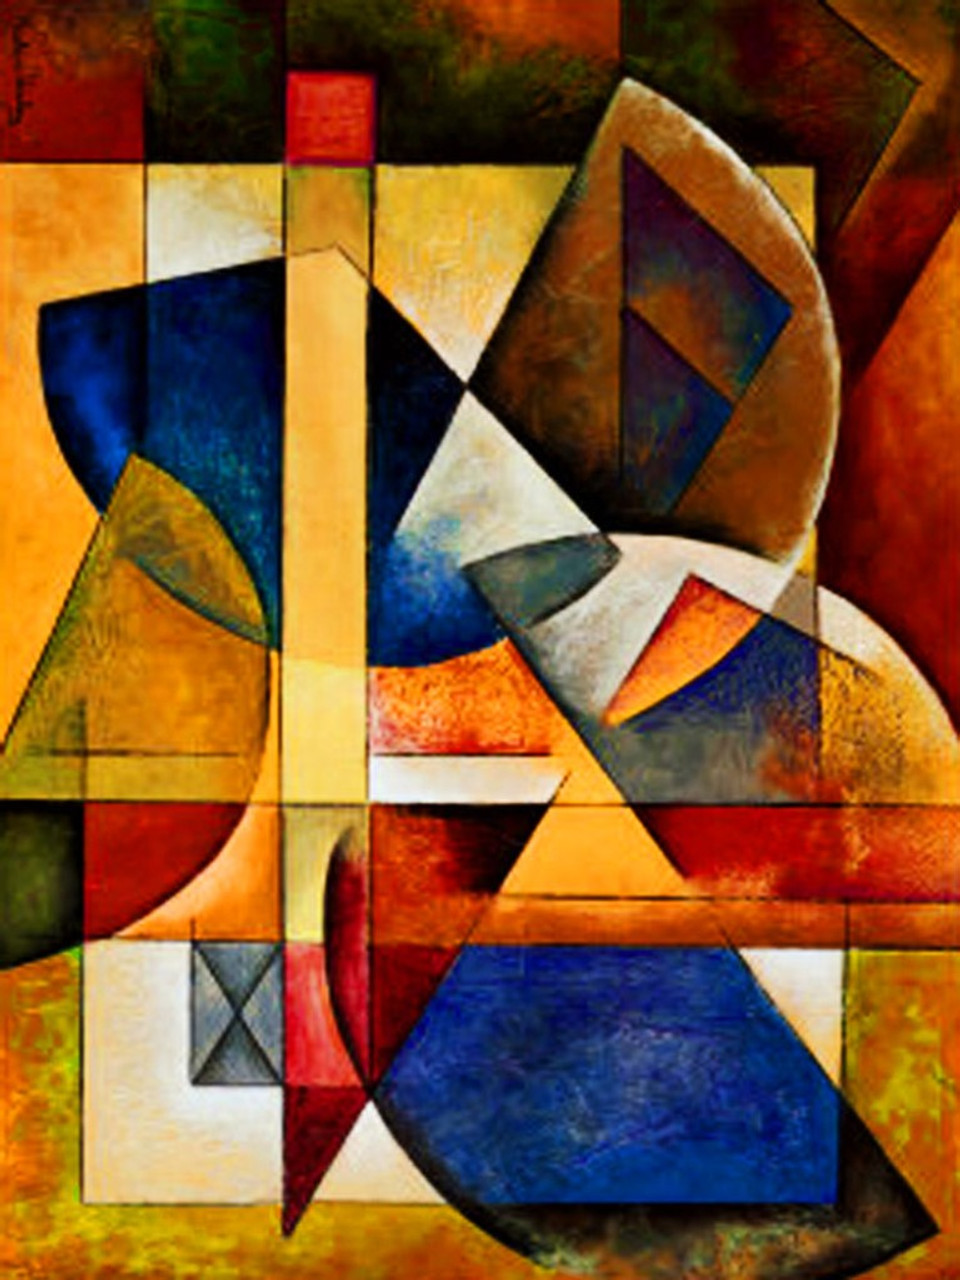 buy 31abt129 by community artists group@ rs. 3990. code